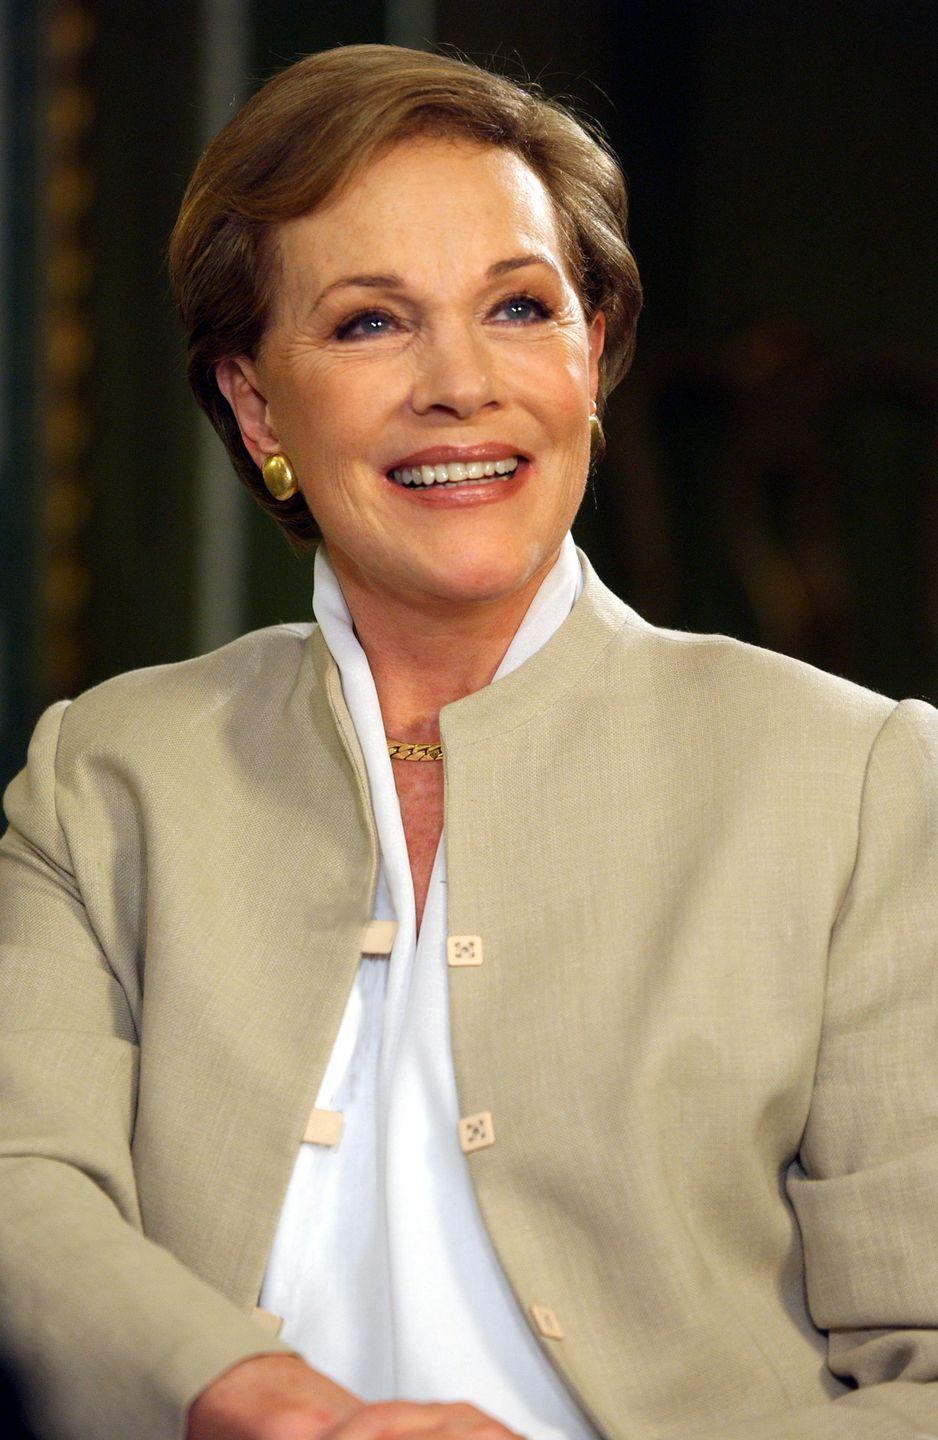 """<p>The legend herself dropped in to provide the voice of Lady Whistledown, <em>Bridgerton</em>'s version of Gossip Girl. The casting decision was a sage one: Known for her work in <em><a href=""""https://www.amazon.com/Sound-Music-Sing-Along-Julie-Andrews/dp/B01A45HSSC?tag=syn-yahoo-20&ascsubtag=%5Bartid%7C10072.g.34930956%5Bsrc%7Cyahoo-us"""" rel=""""nofollow noopener"""" target=""""_blank"""" data-ylk=""""slk:The Sound of Music"""" class=""""link rapid-noclick-resp"""">The Sound of Music</a>, Mary Poppins, </em>and <em><a href=""""https://www.amazon.com/Princess-Diaries-Anne-Hathaway/dp/B003V5G924?tag=syn-yahoo-20&ascsubtag=%5Bartid%7C10072.g.34930956%5Bsrc%7Cyahoo-us"""" rel=""""nofollow noopener"""" target=""""_blank"""" data-ylk=""""slk:The Princess Diaries"""" class=""""link rapid-noclick-resp"""">The Princess Diaries</a></em><a href=""""https://www.amazon.com/Princess-Diaries-Anne-Hathaway/dp/B003V5G924?tag=syn-yahoo-20&ascsubtag=%5Bartid%7C10072.g.34930956%5Bsrc%7Cyahoo-us"""" rel=""""nofollow noopener"""" target=""""_blank"""" data-ylk=""""slk:,"""" class=""""link rapid-noclick-resp"""">,</a> to name a select few, Andrews has a reputation for her blend of elegance and mischief. Nothing describes Lady Whistledown better. Read <a href=""""https://www.oprahmag.com/entertainment/a29461372/julie-andrews-new-book-diane-sawyer-interview/"""" rel=""""nofollow noopener"""" target=""""_blank"""" data-ylk=""""slk:Andrews's highly entertaining memoir"""" class=""""link rapid-noclick-resp"""">Andrews's highly entertaining memoir </a>when you're done binge-watching the Netflix romance.</p><p><strong>Follow Her on Instagram: </strong>@<a href=""""https://www.instagram.com/julieandrews/?hl=en"""" rel=""""nofollow noopener"""" target=""""_blank"""" data-ylk=""""slk:julieandrews"""" class=""""link rapid-noclick-resp"""">julieandrews</a></p>"""